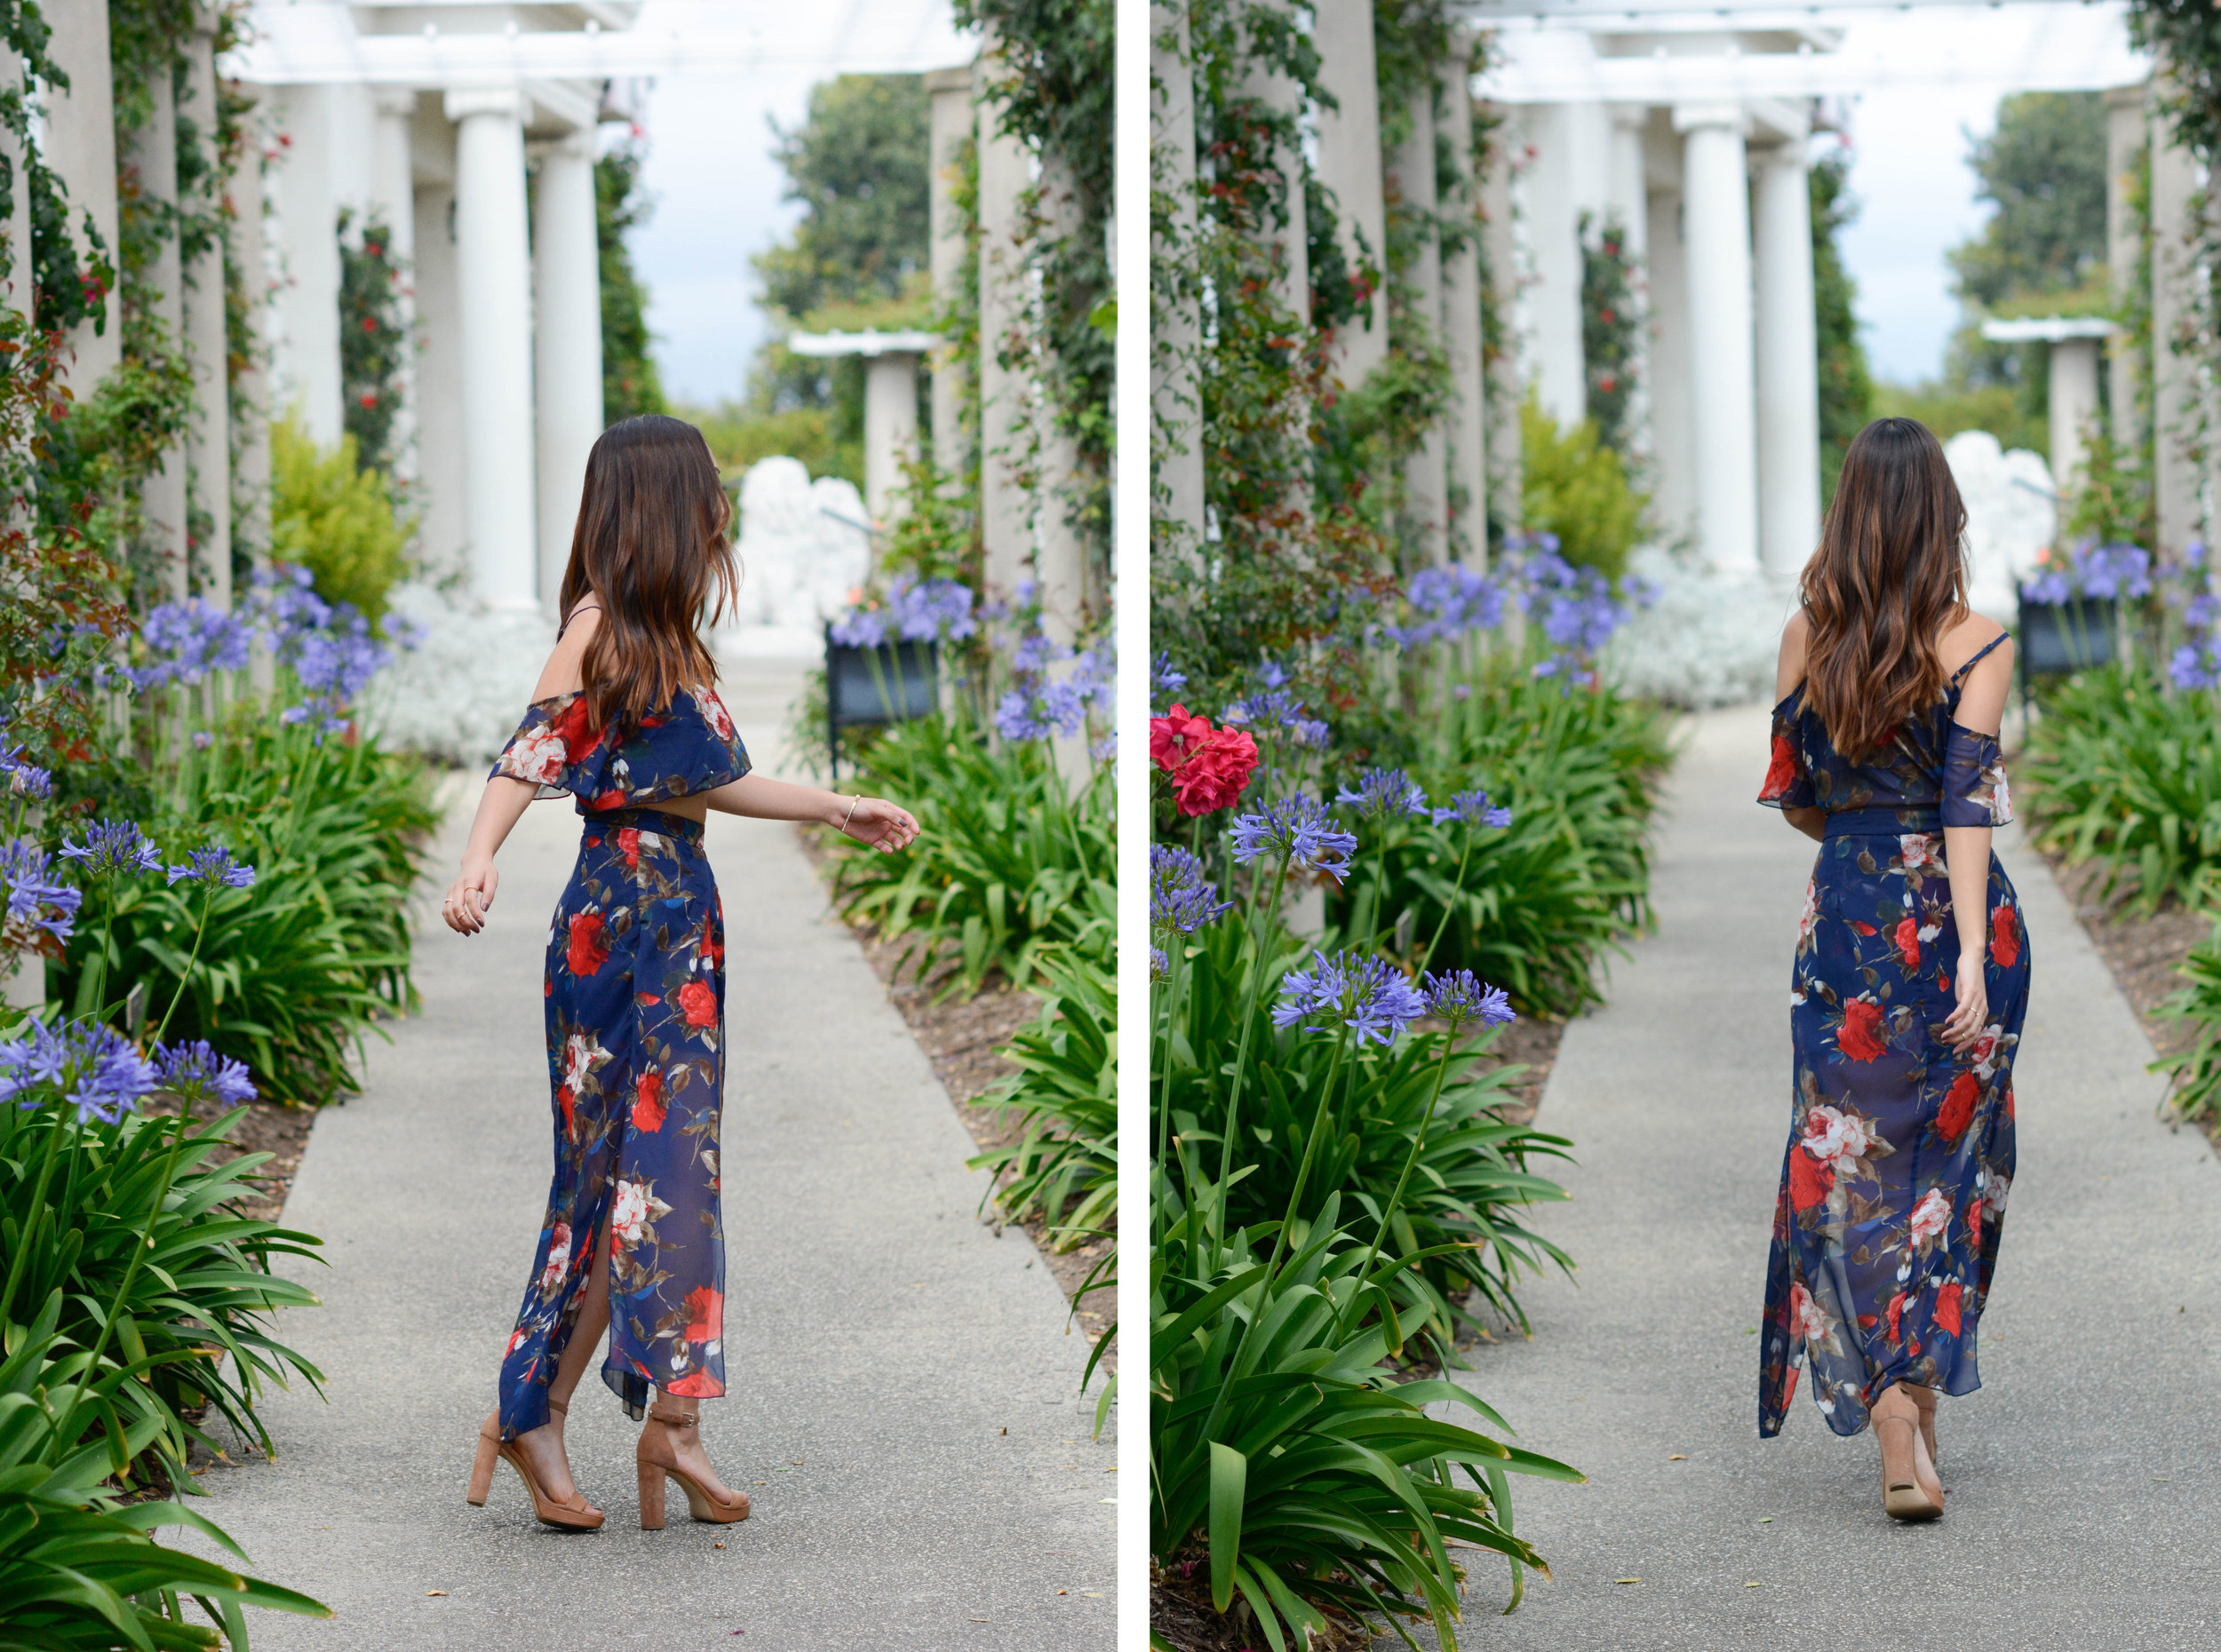 """Surprise, surprise, my """"two piece"""" is actually a romper! At the back it all connects however the front gives the effect that its a two piece with matching top and bottoms. What makes this romper so special is the high low detail. It really makes the piece look elegant and chic."""